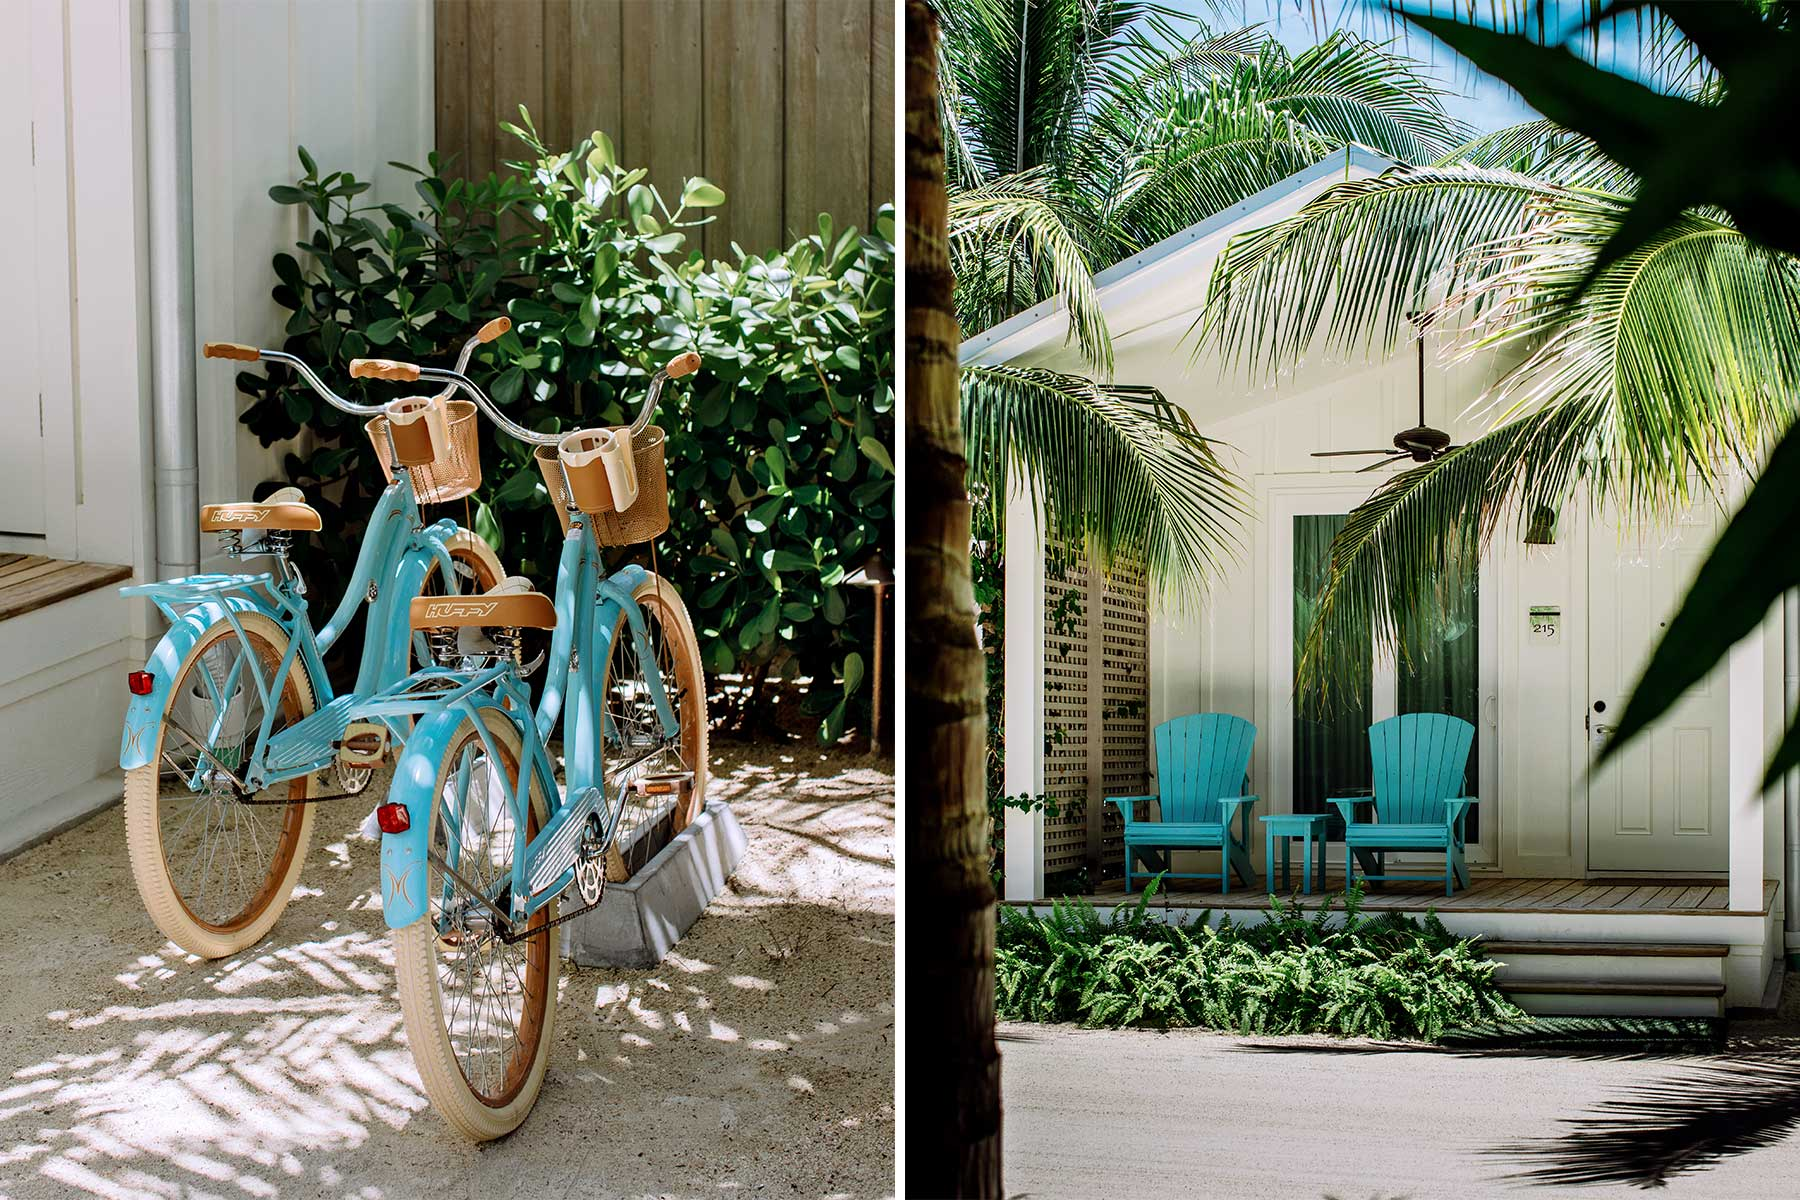 Scenes from the Florida Keys: bikes and the exterior of a guest bungalow at Bungalows Key Largo resort